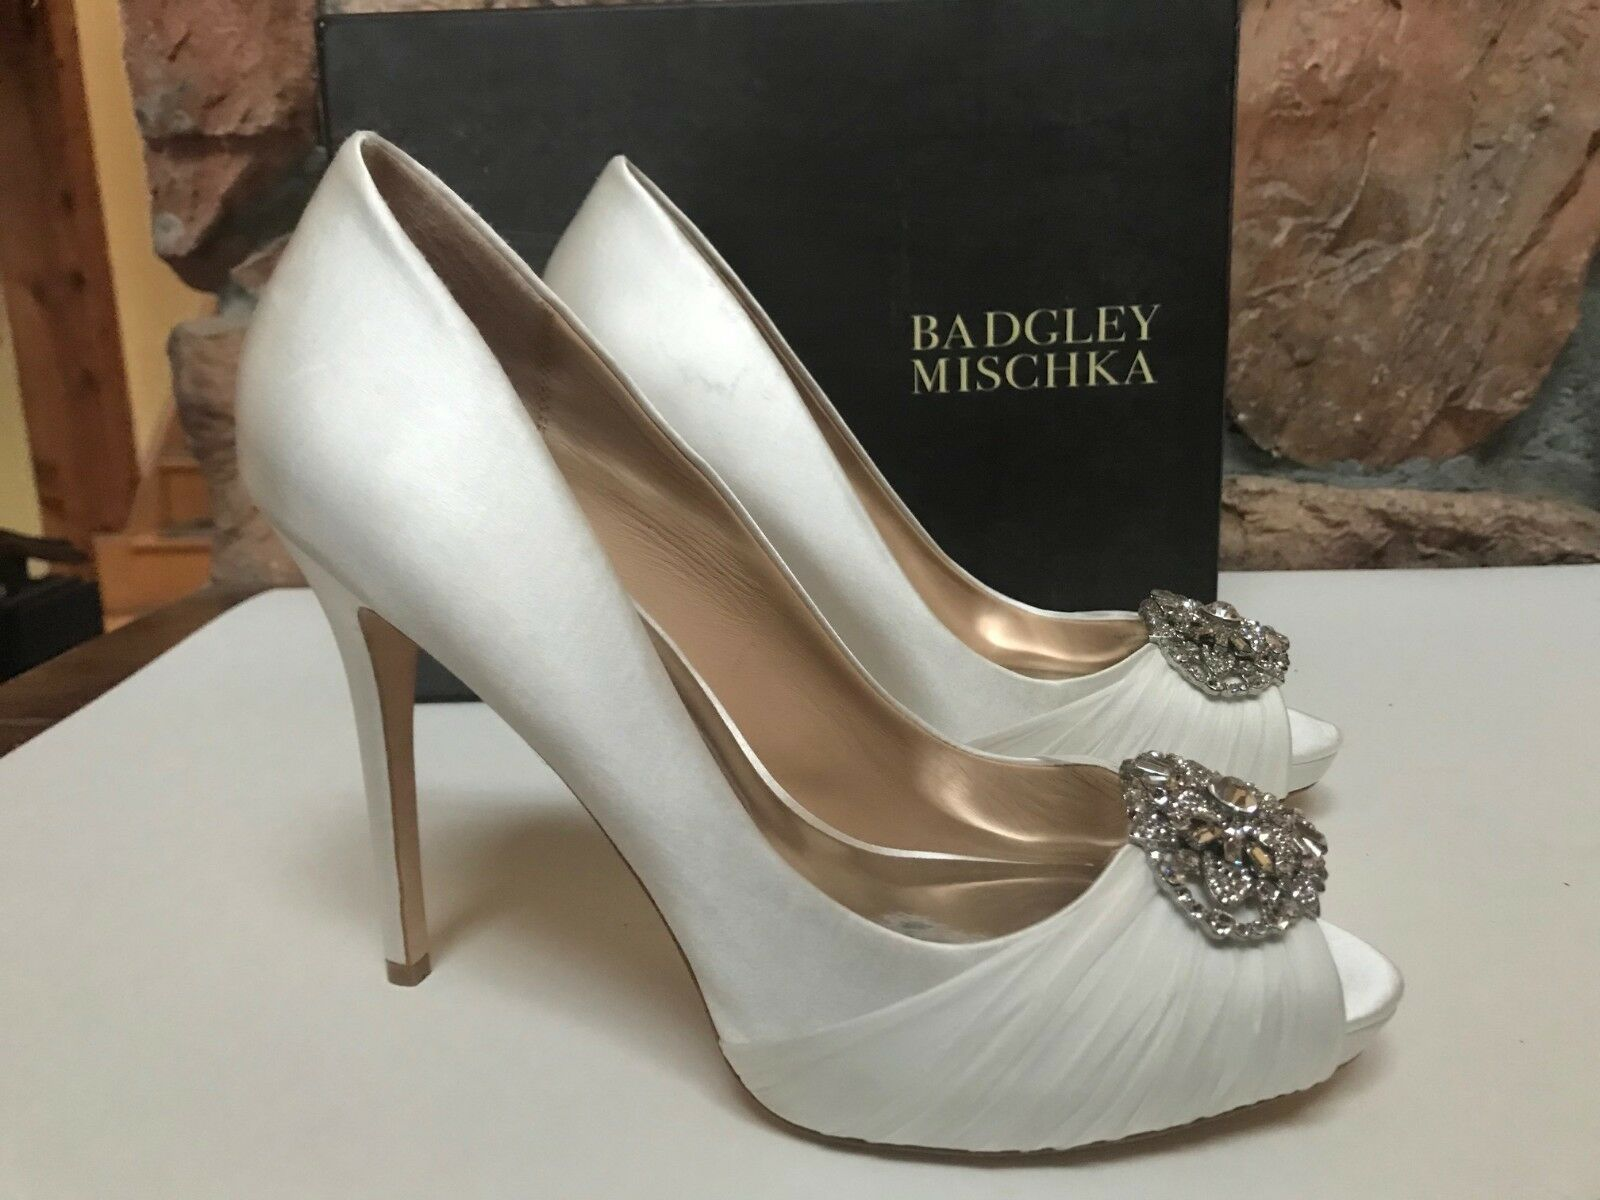 Badgley Mischka Women's Women's Women's Desi White Satin Pumps High Heel US 10 New f90e81